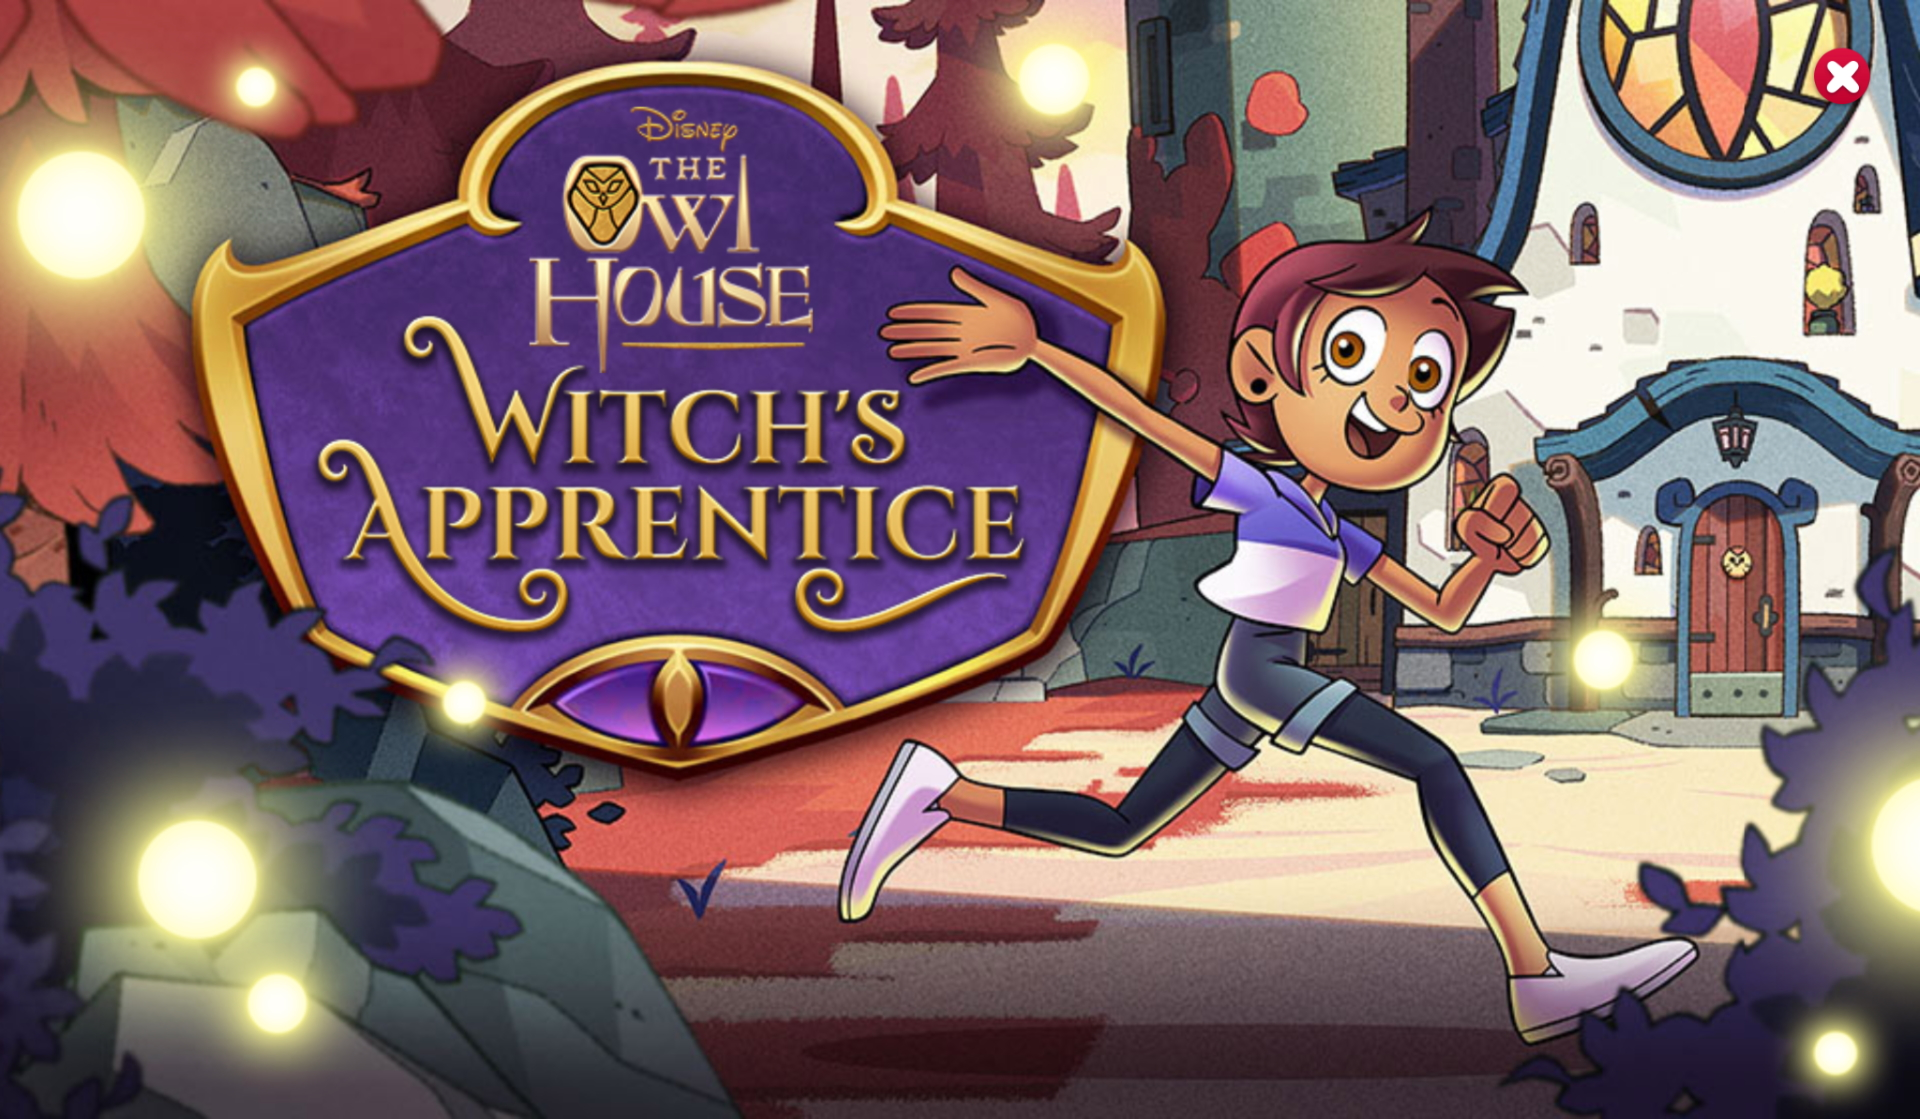 The Owl House: Witch's Apprentice